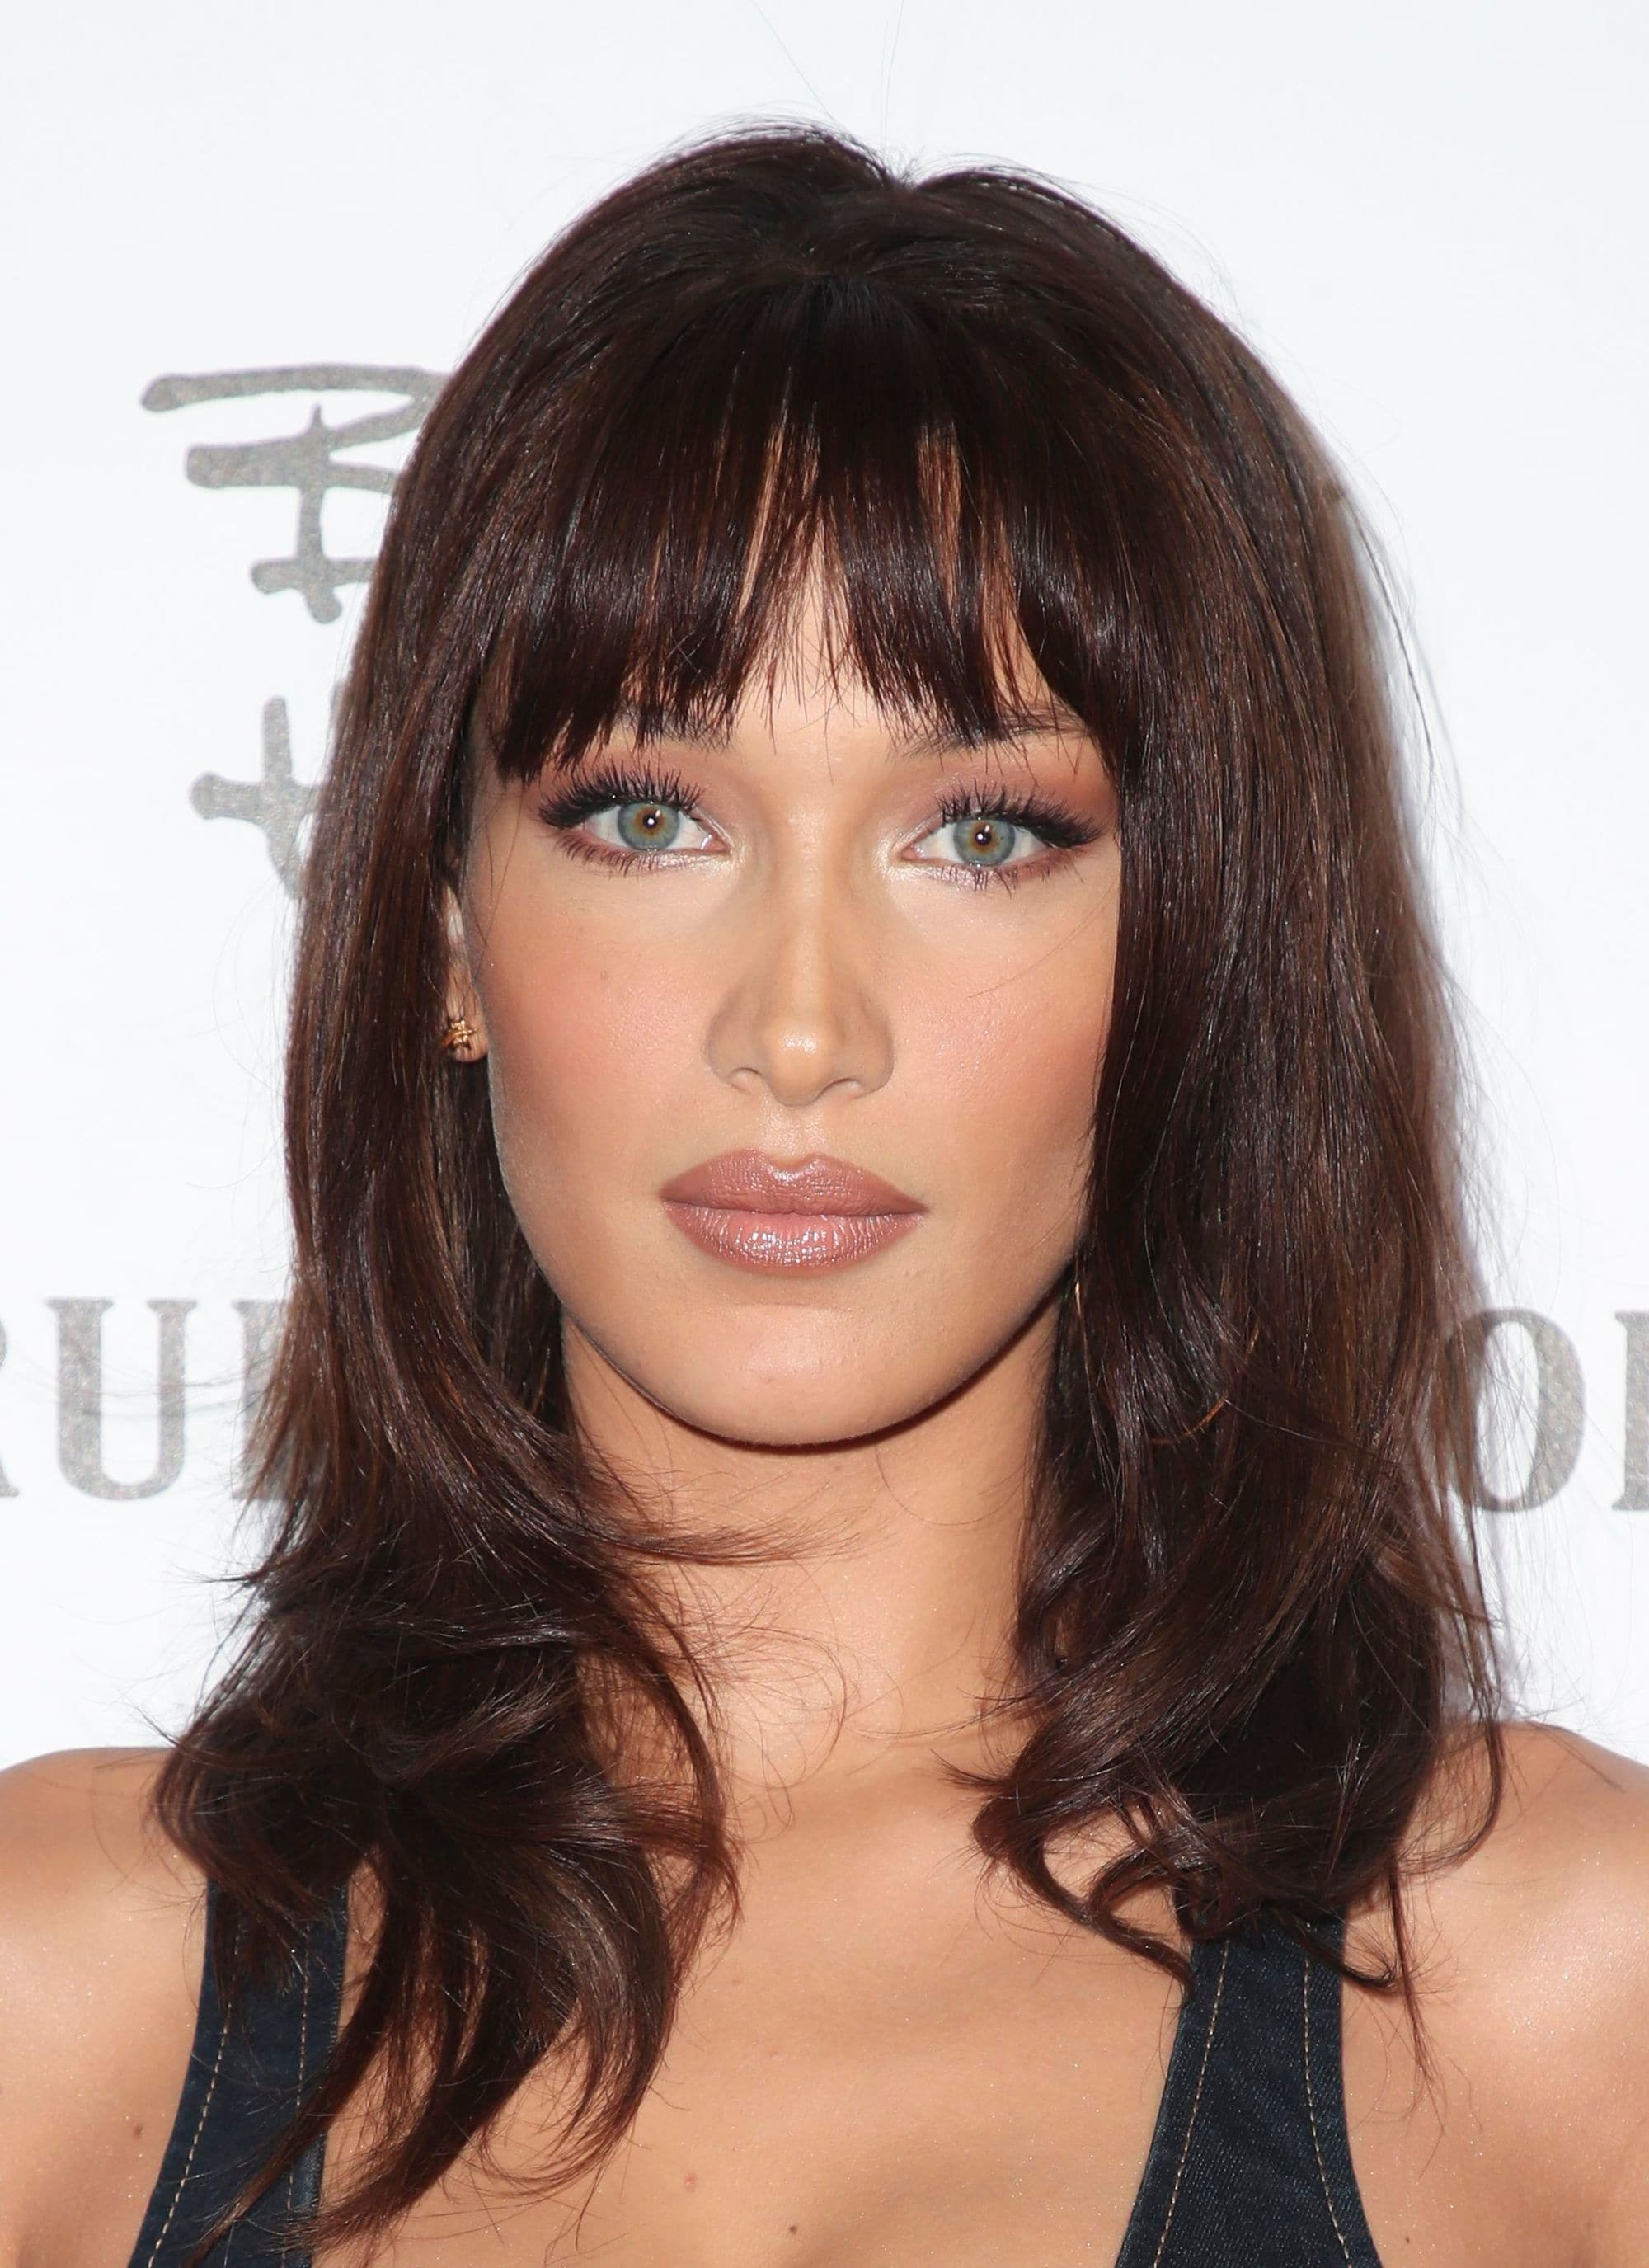 Winter hairstyles 2018: Close-up shot of Bella Hadid with '90s style layered hair and a choppy fringe